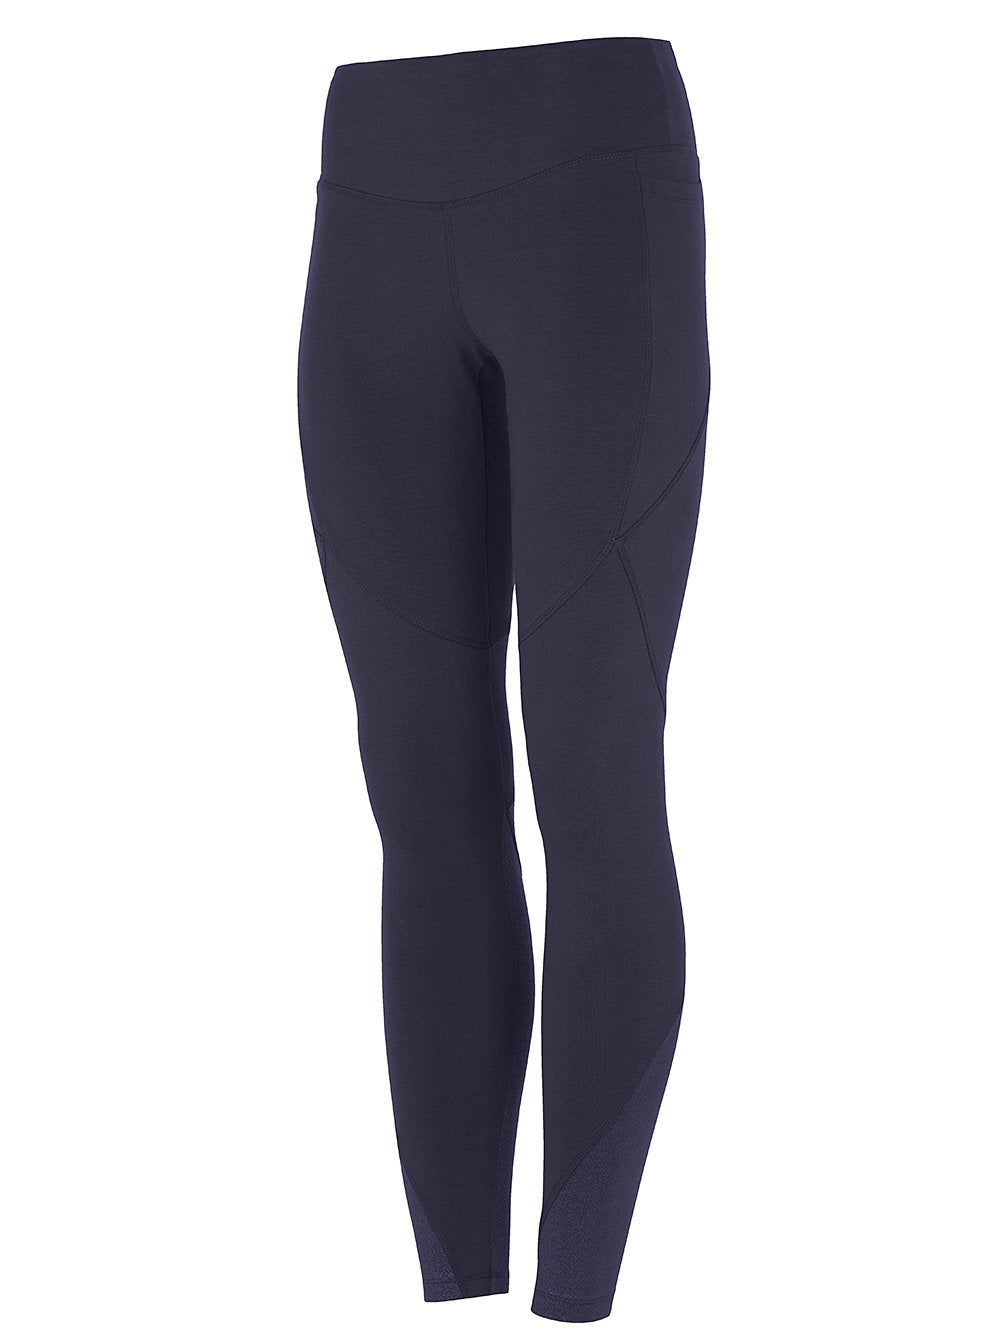 High Waist Glamour Legging Dark Indigo